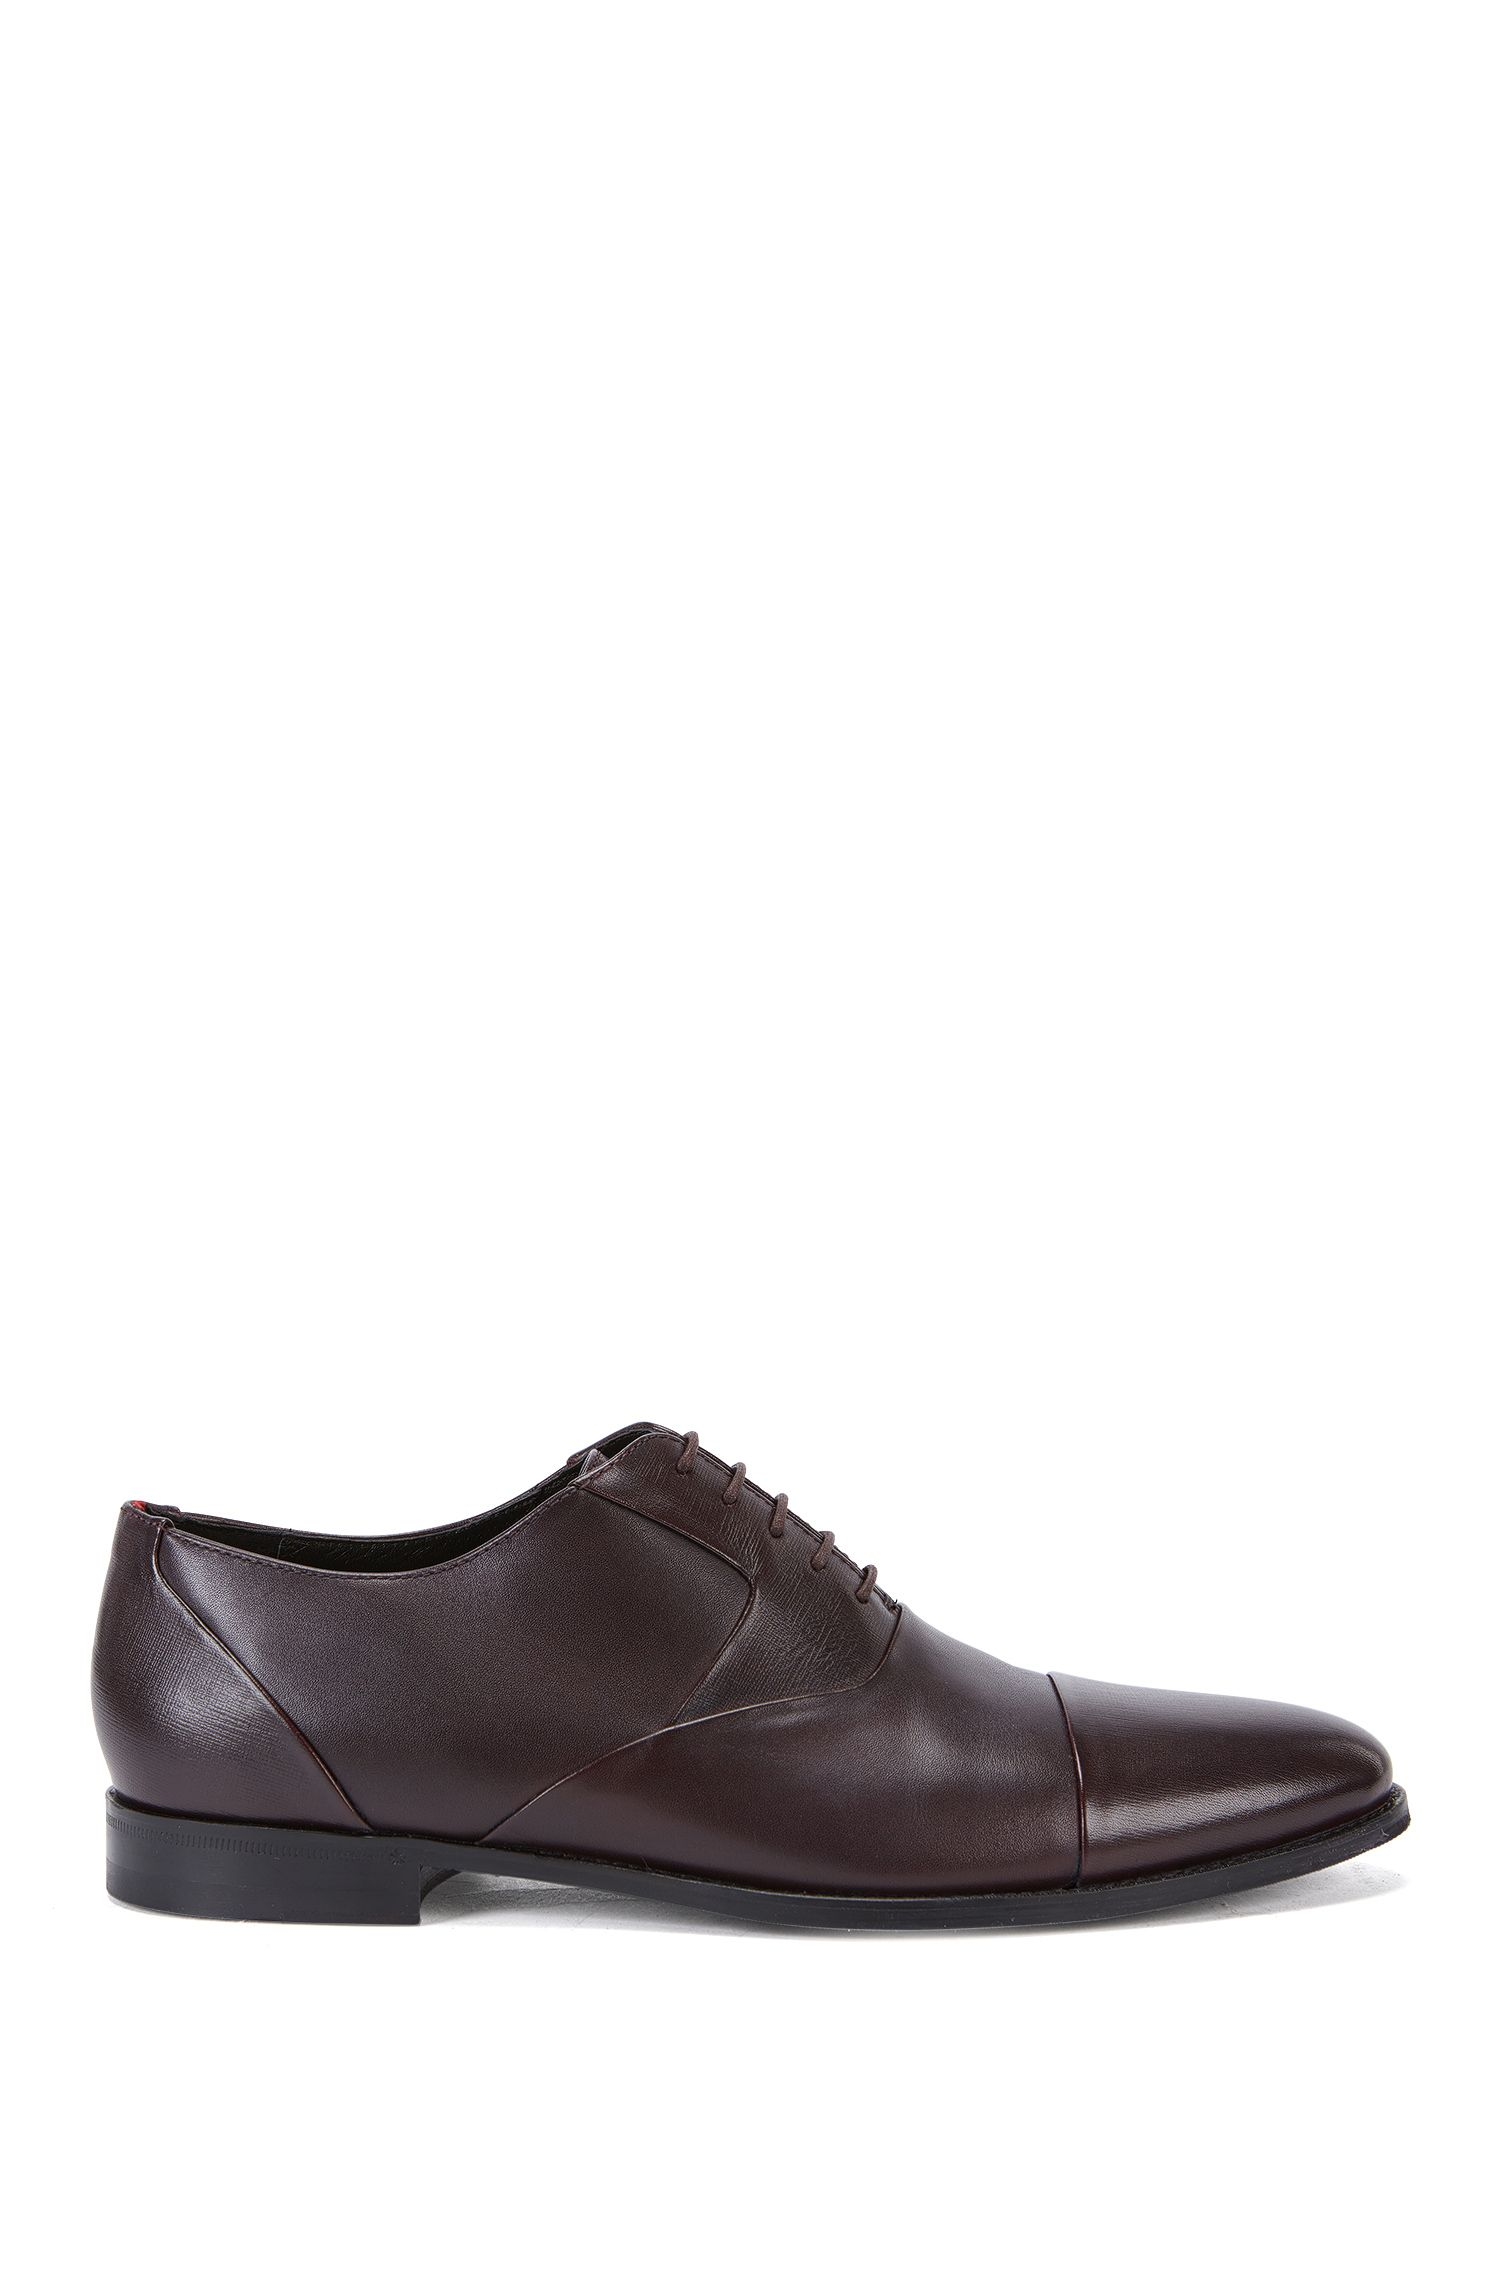 Leather Oxford shoes with Saffiano detail